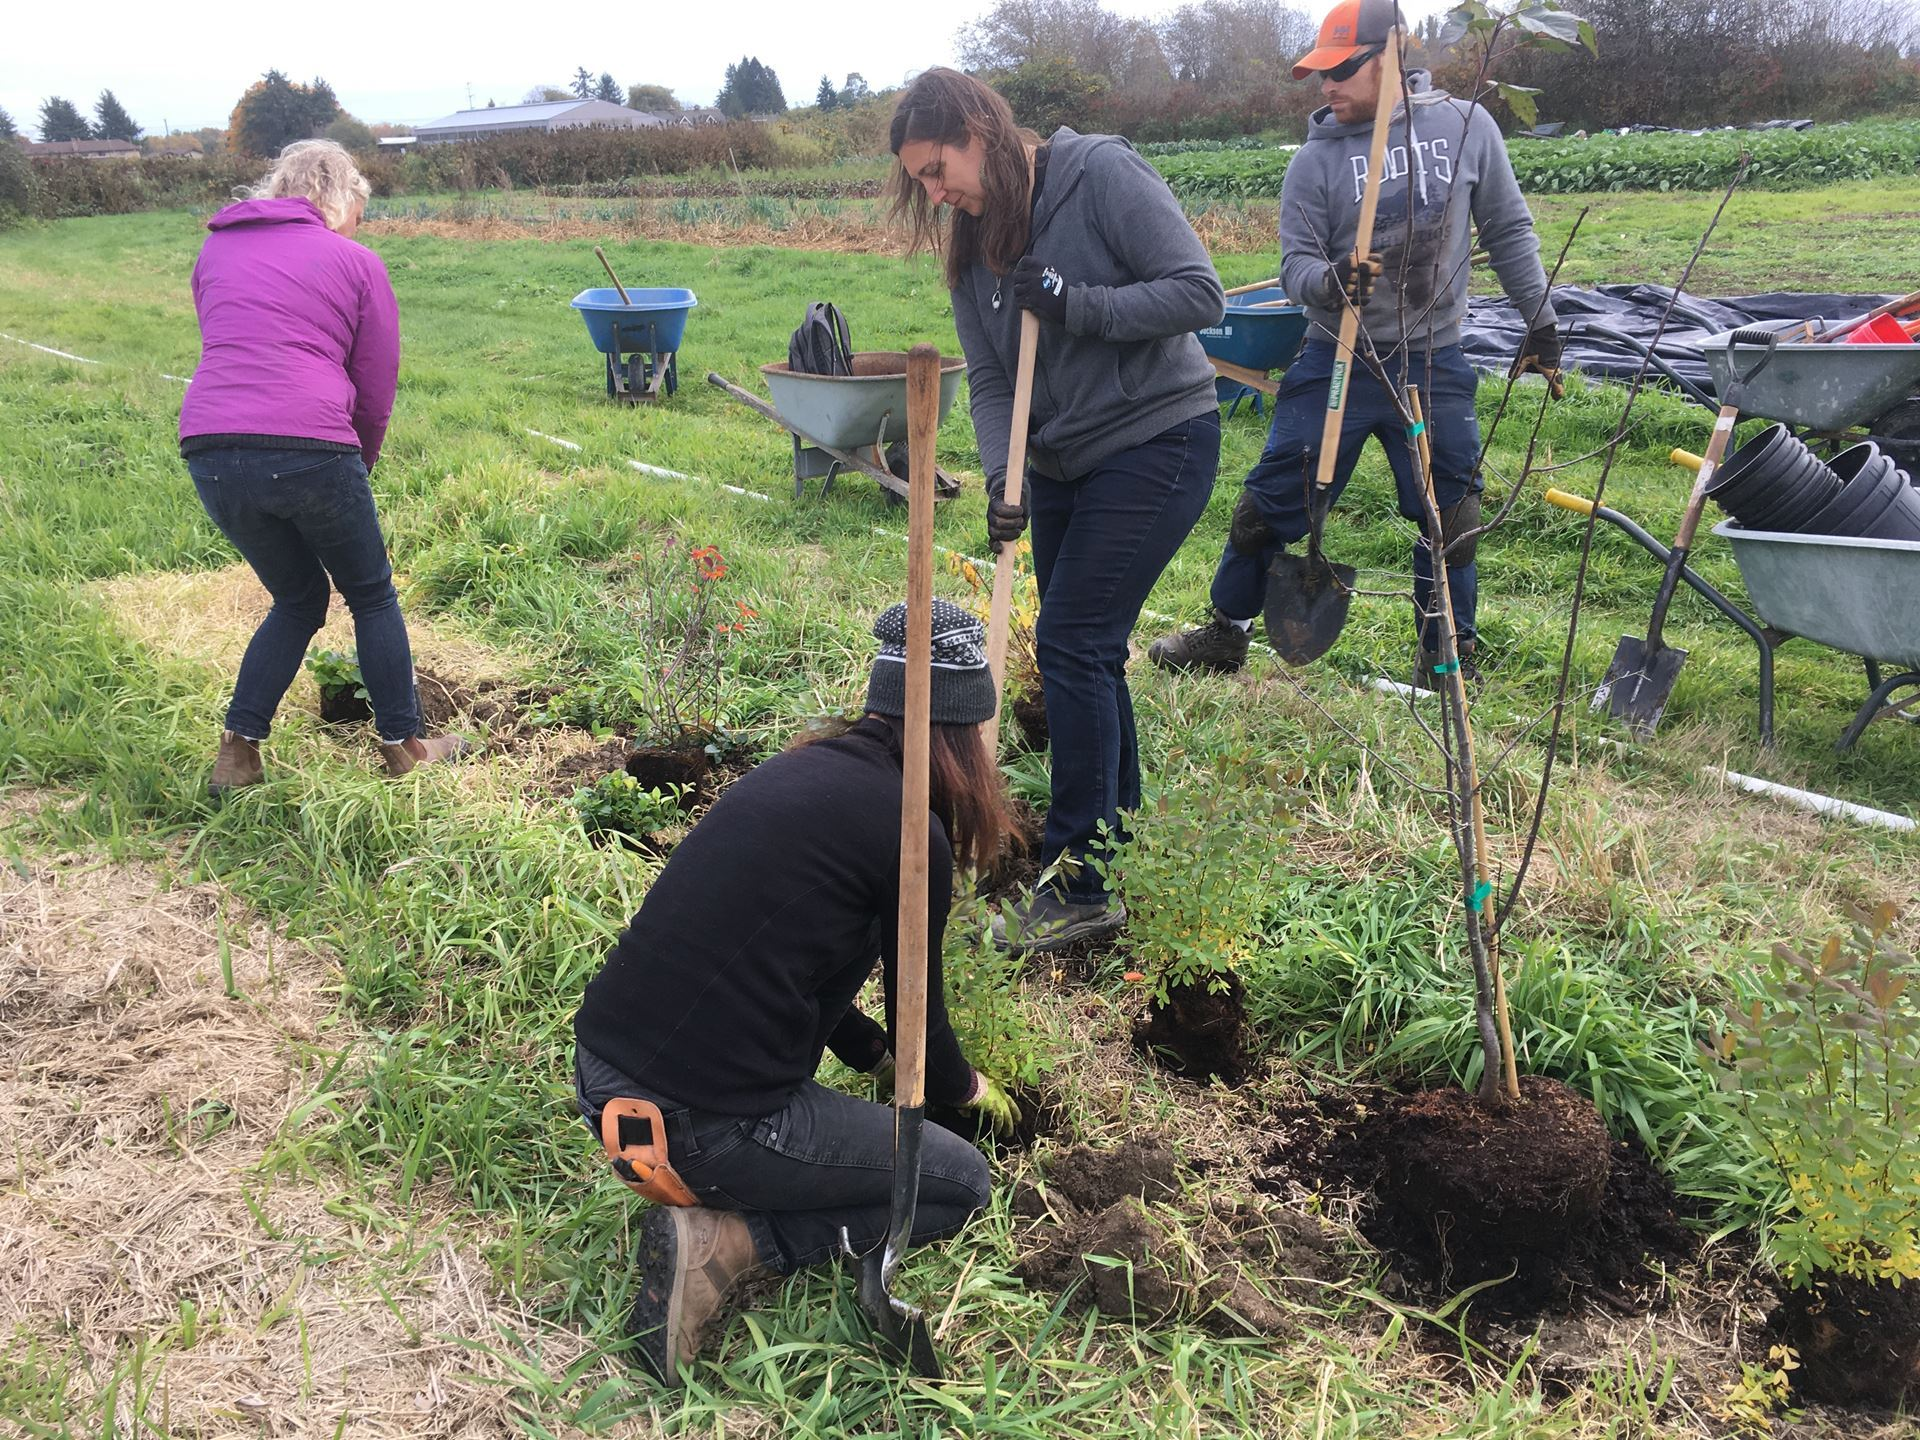 UBC Horticulture Training Program students planting our first native pollinator hedgerow